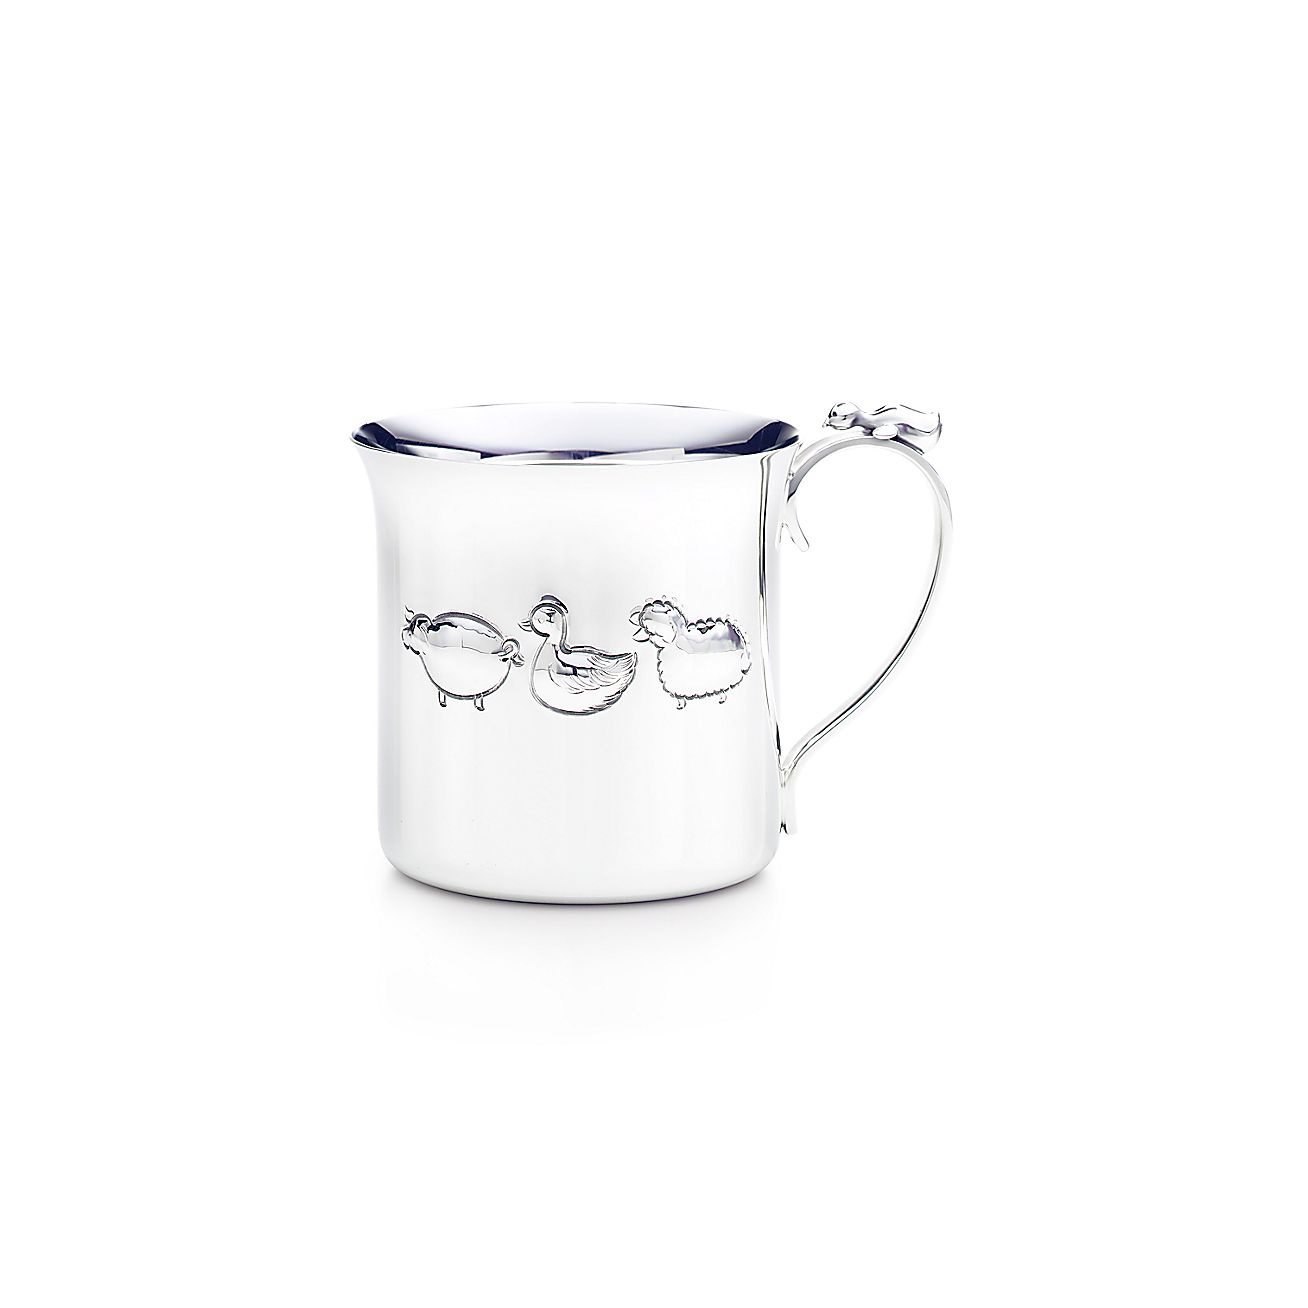 Tiffany Baby Gifts Australia : Tiffany farm baby cup in sterling silver co